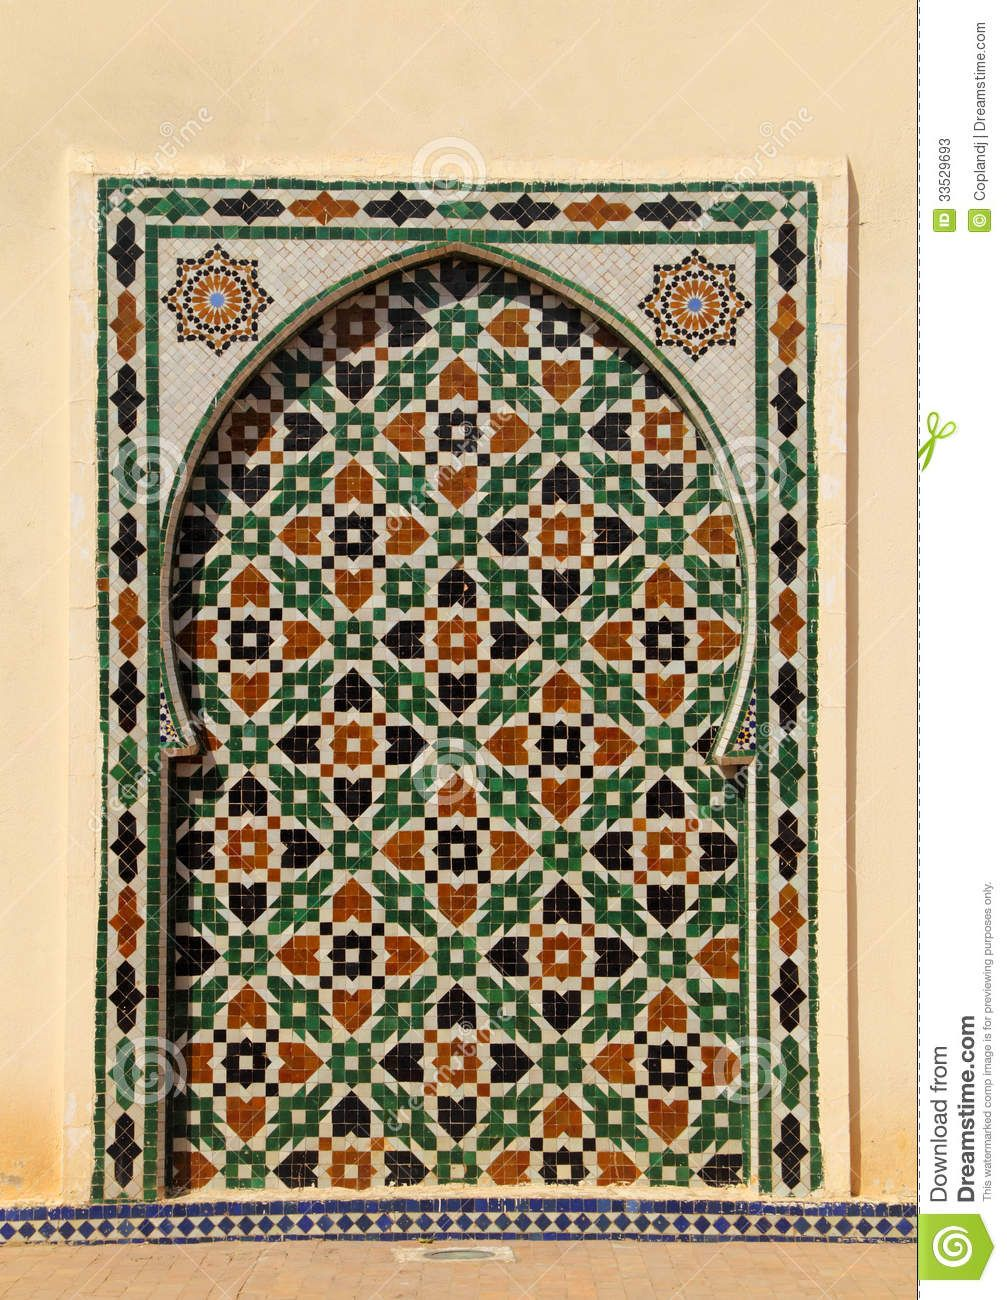 morocco-meknes-islamic-wall-panel-arabesque-decorated-intricate ... for Moroccan Archway  56mzq